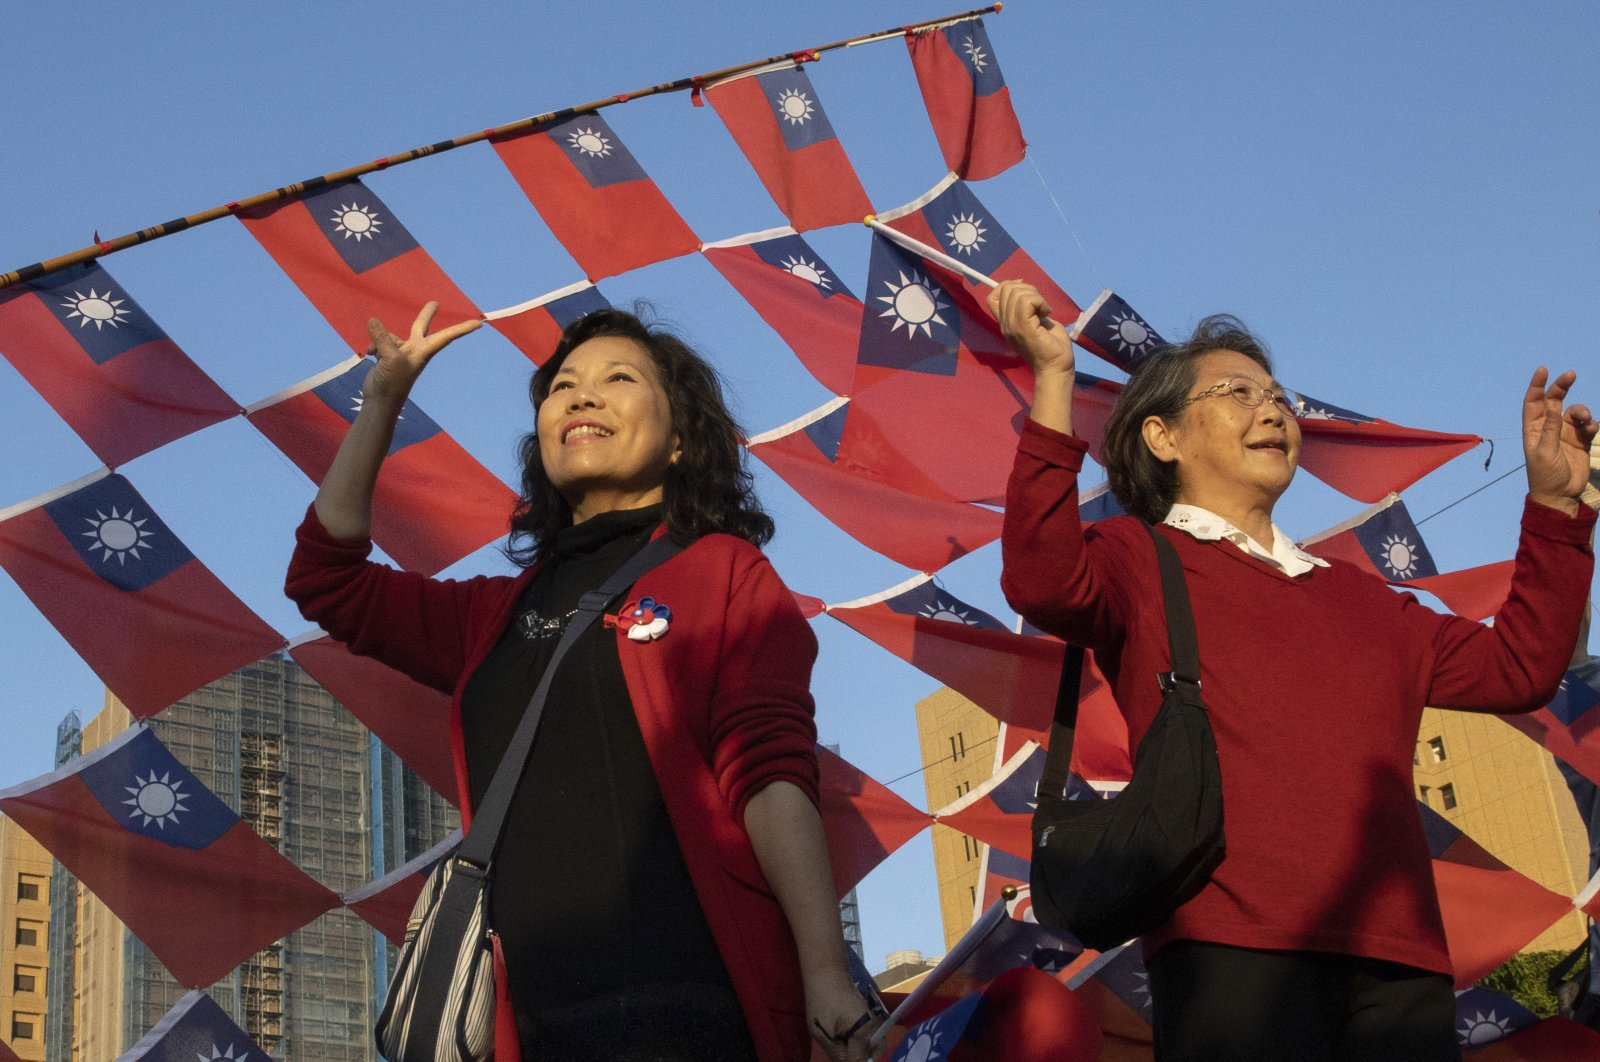 Supporters of the Nationalist or KMT party pose with the Taiwanese flag during a rally for the presidential election in Taipei, Taiwan, Jan. 9, 2020. (AP Photo)